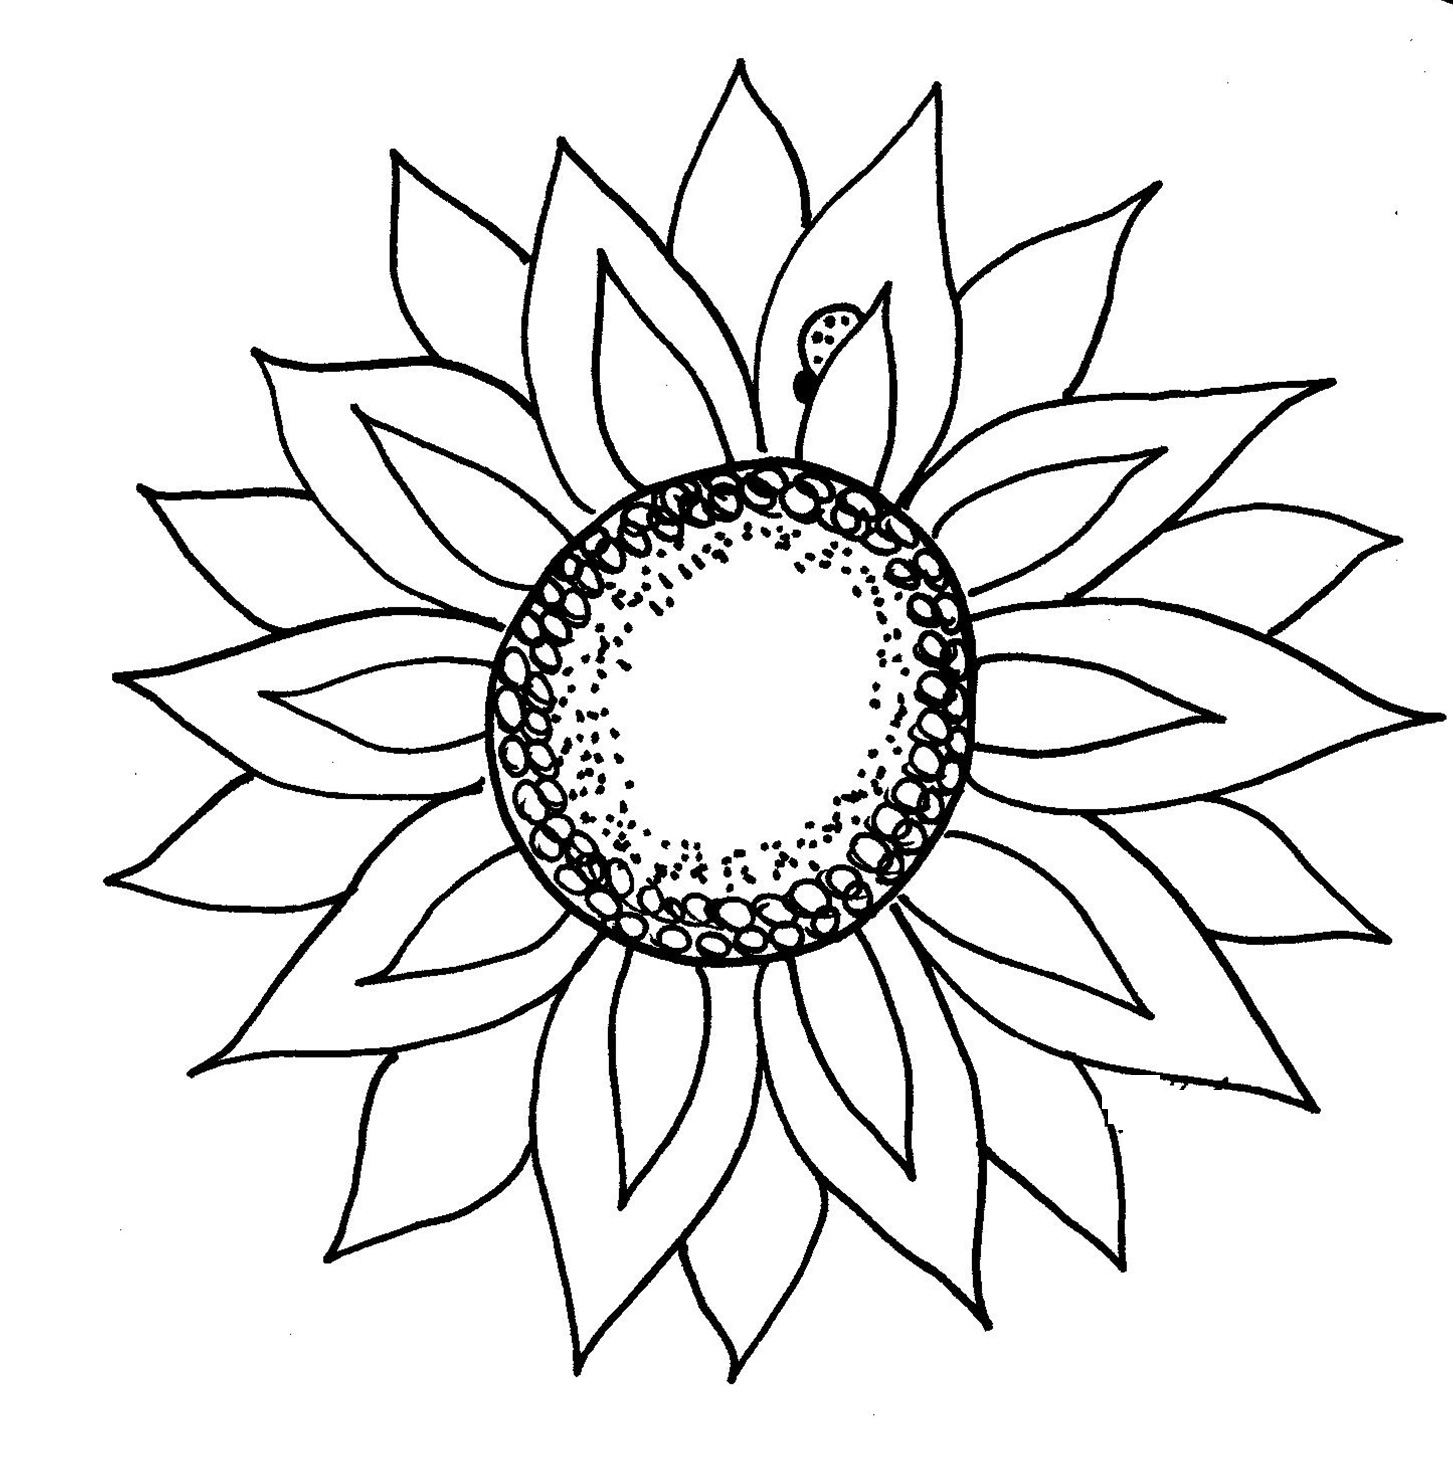 African sunflowers clipart png royalty free stock Free Black Sunflower Cliparts, Download Free Clip Art, Free Clip Art ... png royalty free stock